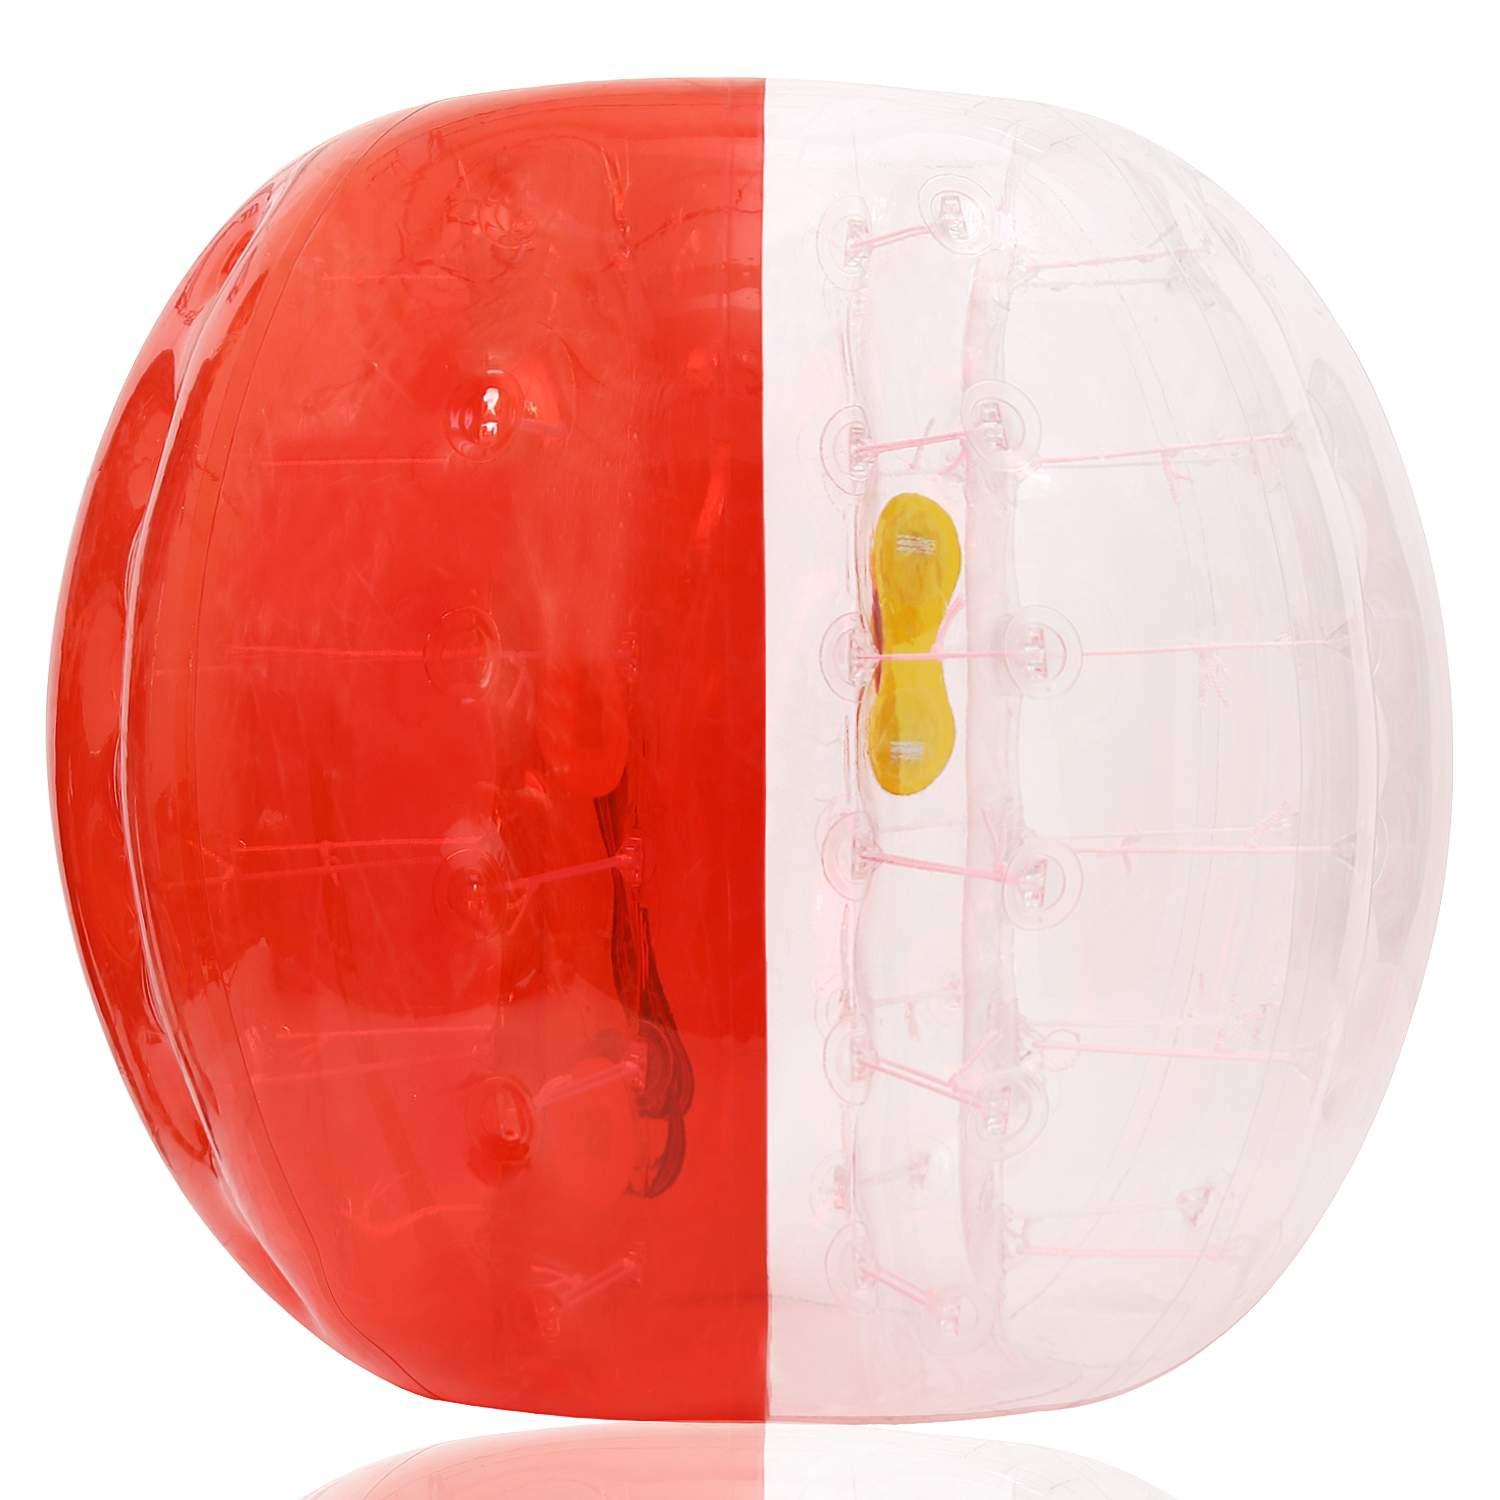 Inflatable Bumper Ball Human Knocker Ball Bubble Soccer Football Adults and Kids KMIMT by